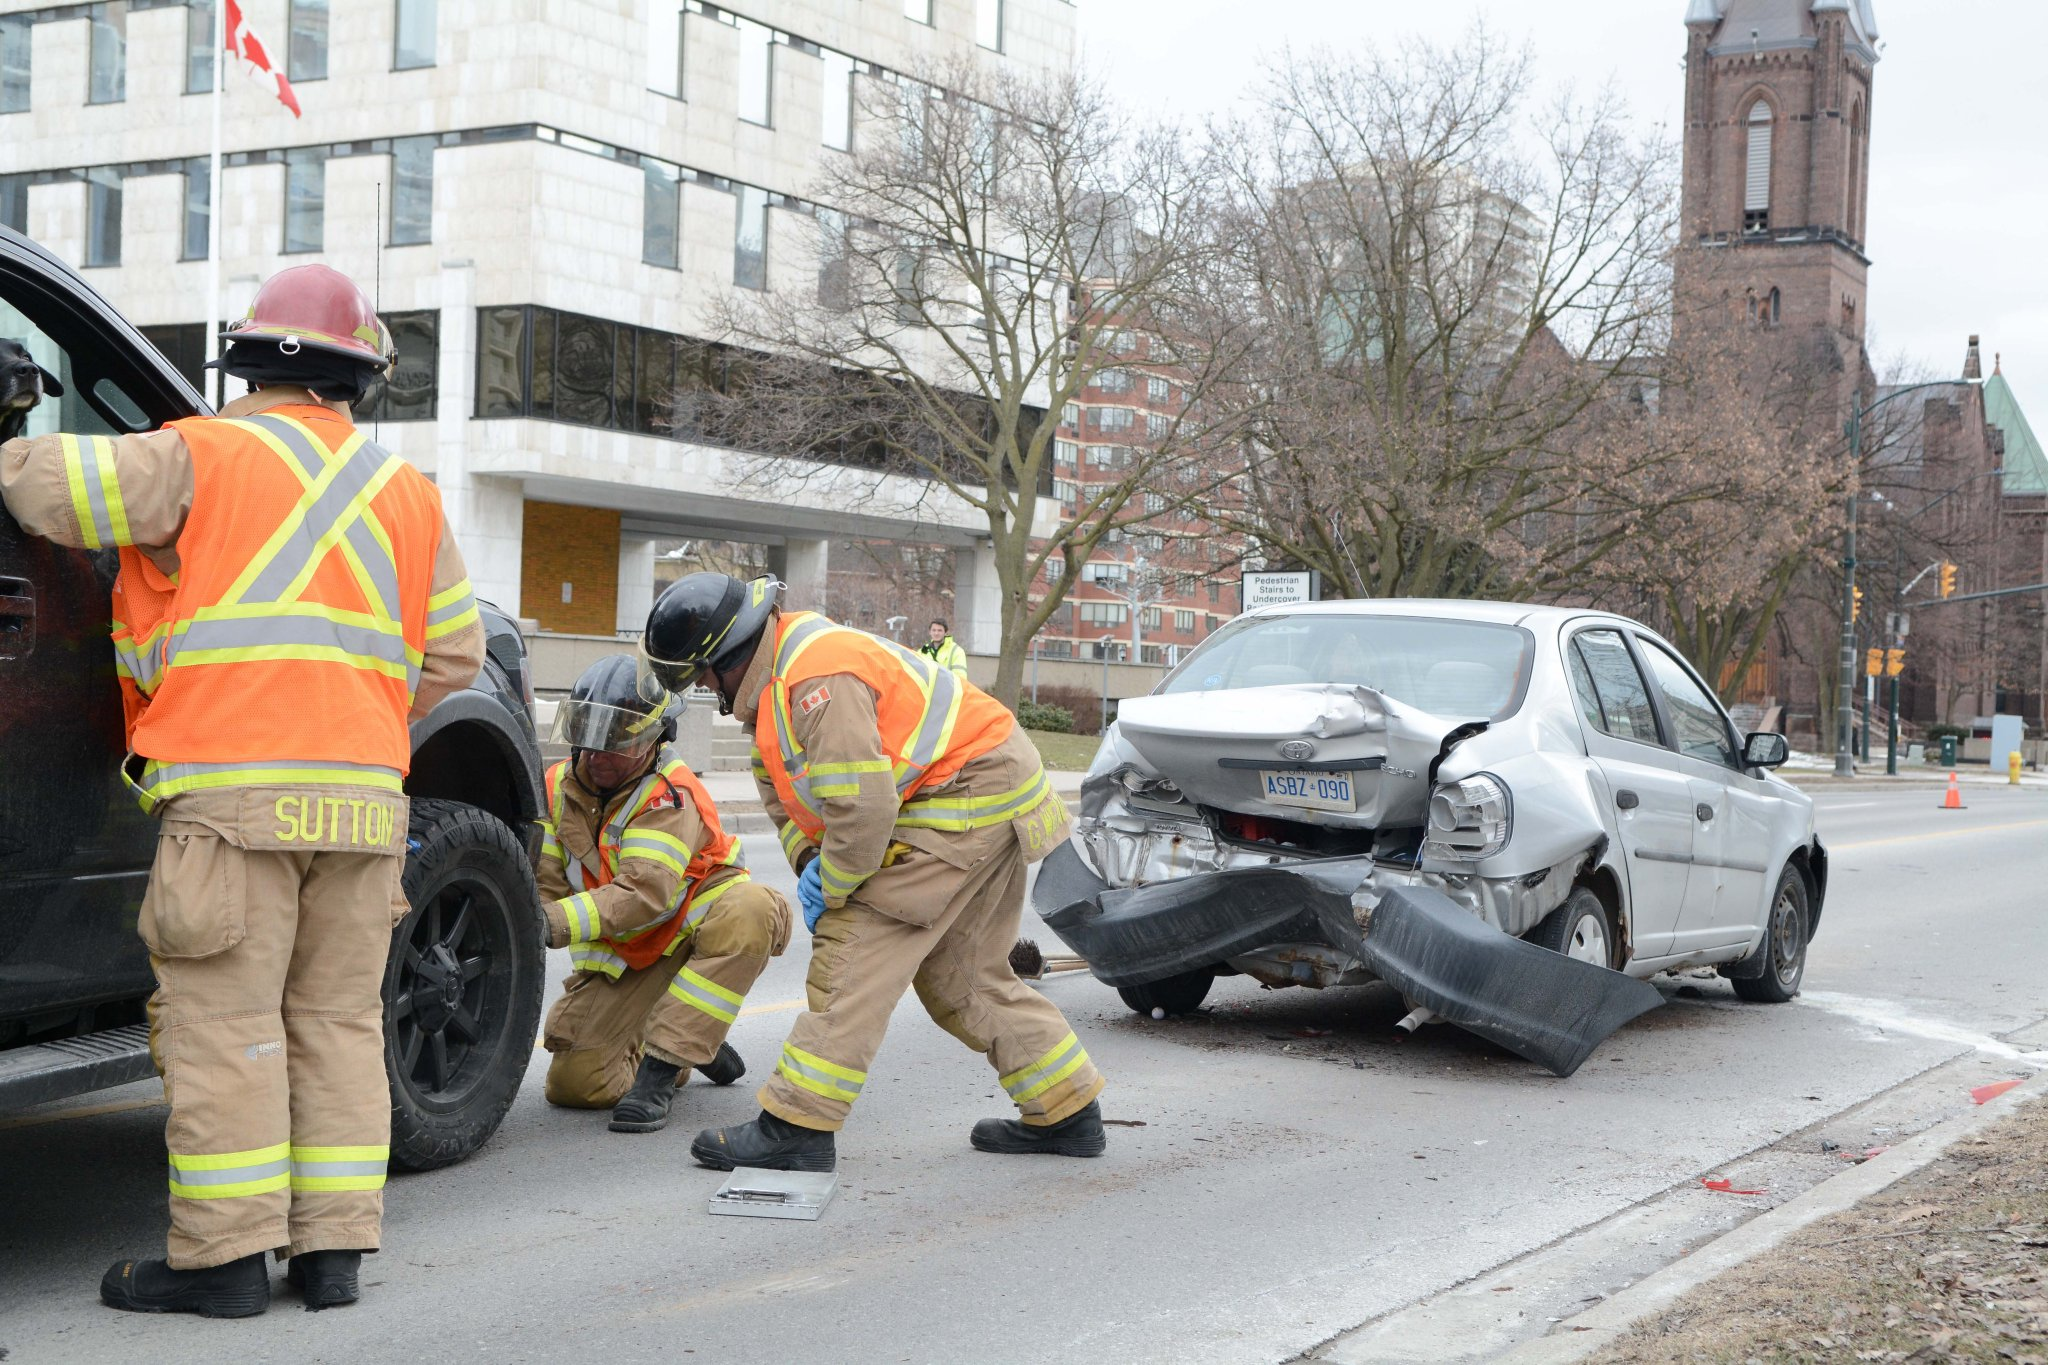 Firefighters help at the scene of a collision on Wellington